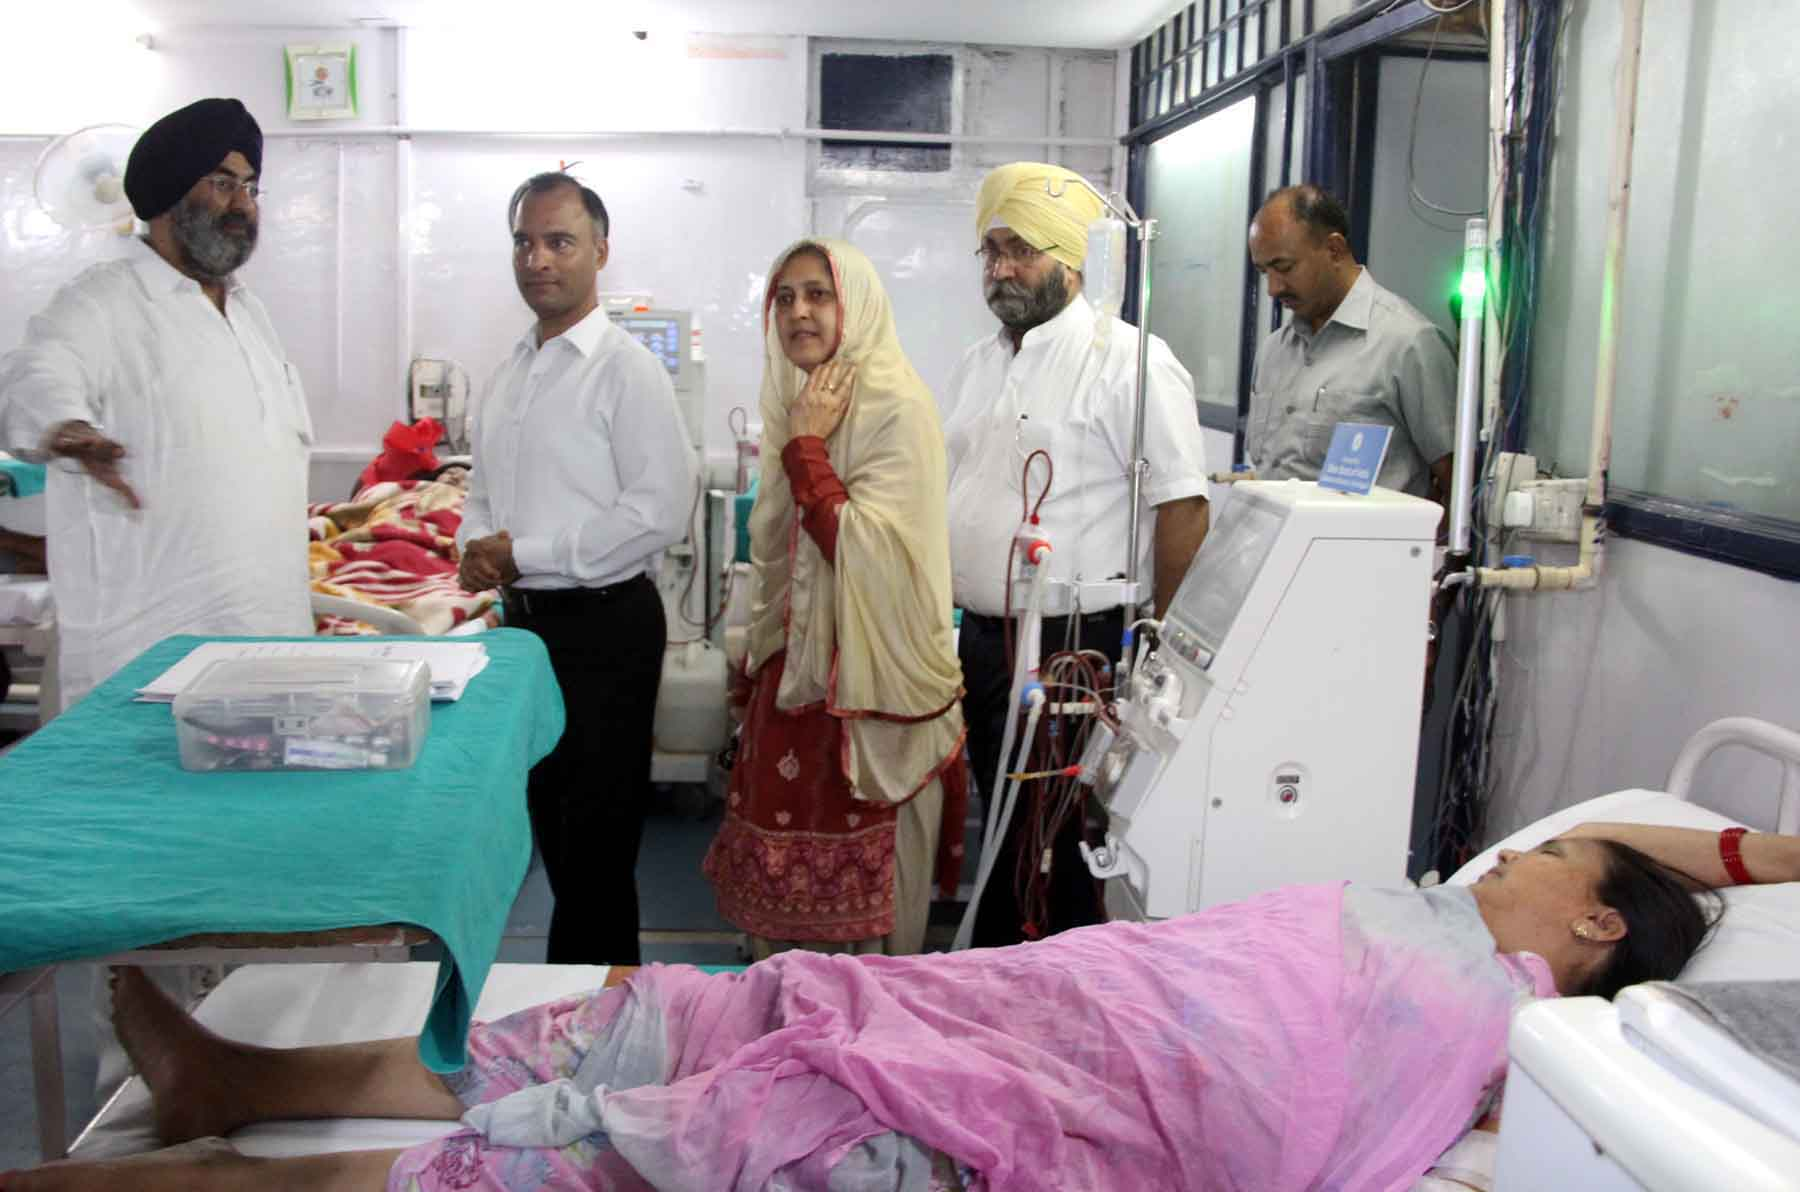 The Adviser to the Administrator, UT, Chandigarh, Mr. Vijay Dev alongwith senior officers visiting at Dr. S Inderjit Singh Charitable Hospital at  IMA Complex, Sector-35, Chandigarh on Wednesday, May 27, 2015.